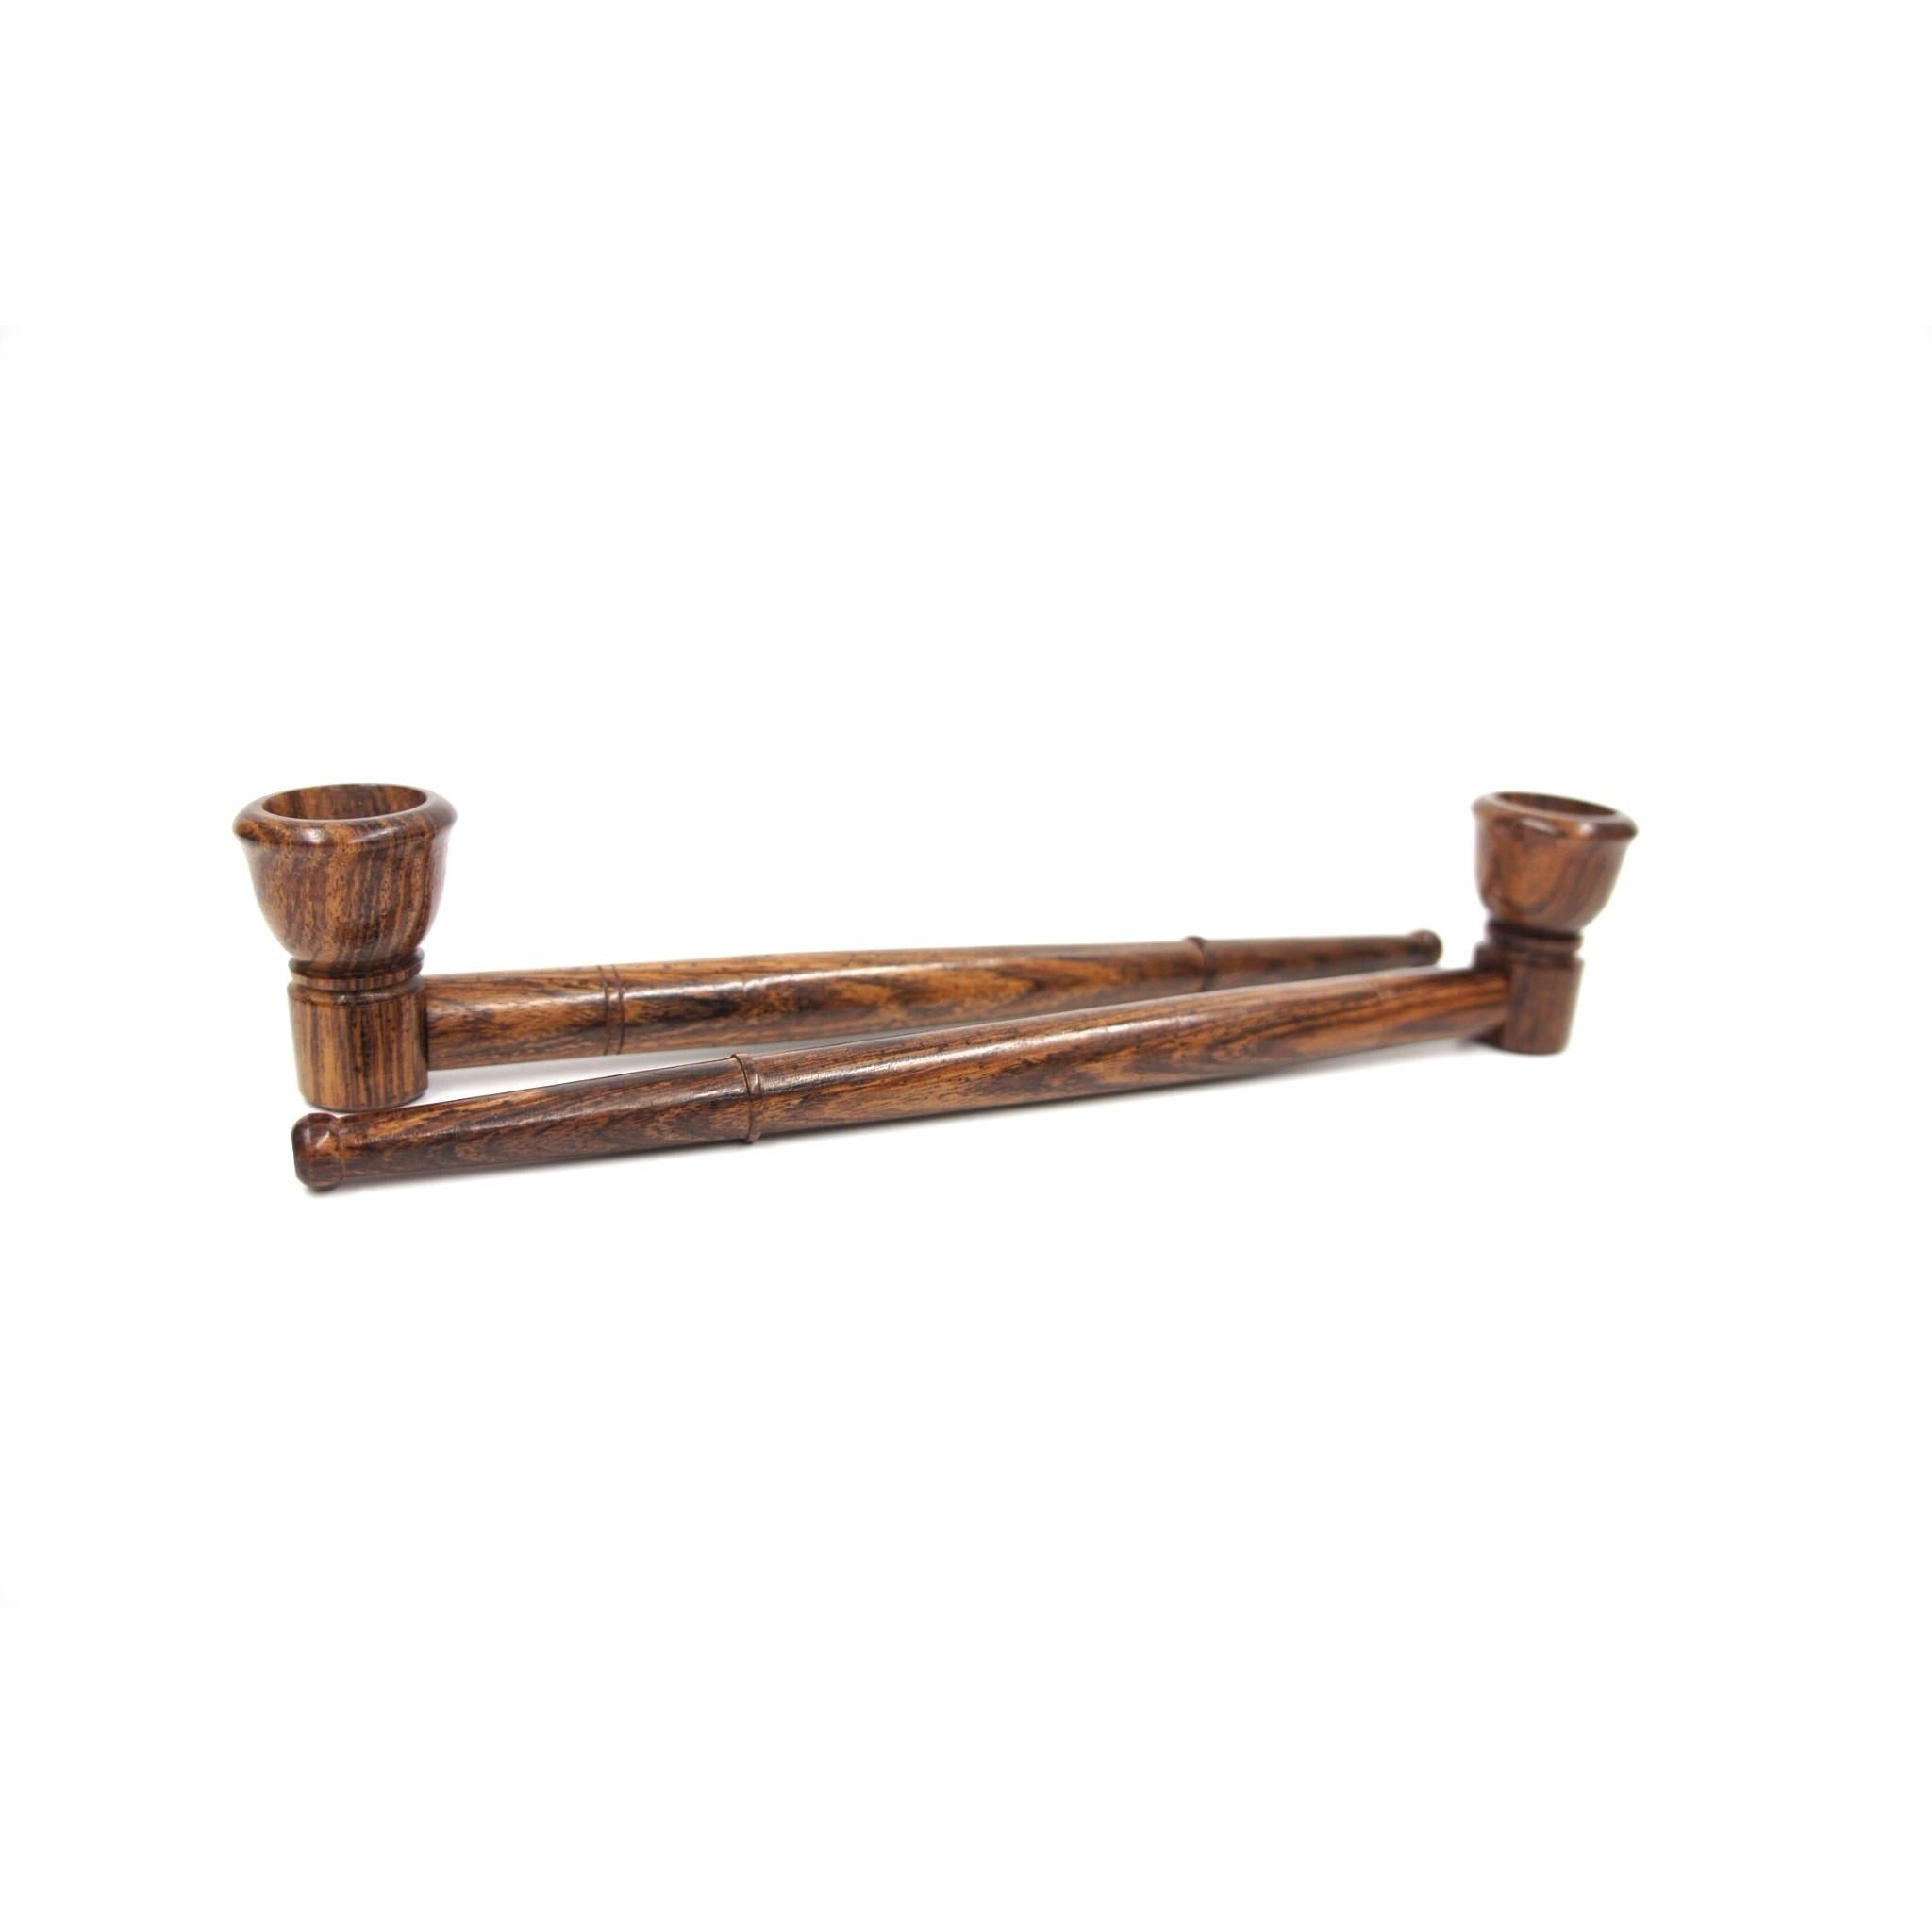 "8"" Long Straight Rosewood Smoking Tobacco Pipe - WoodStonePipes.com   - 2"